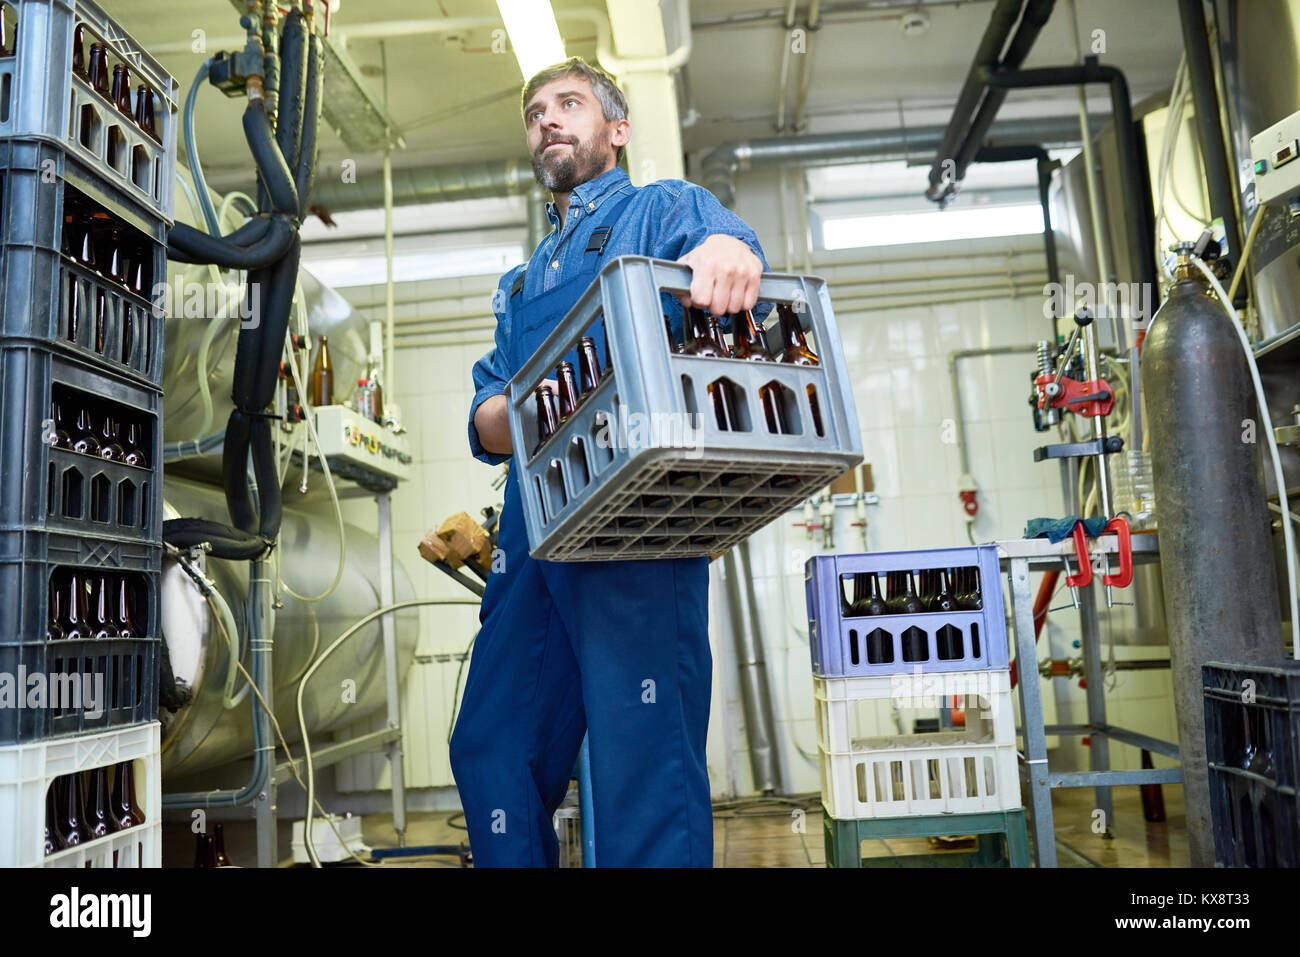 Brewing Plant Worker Carrying Crate - Stock Image